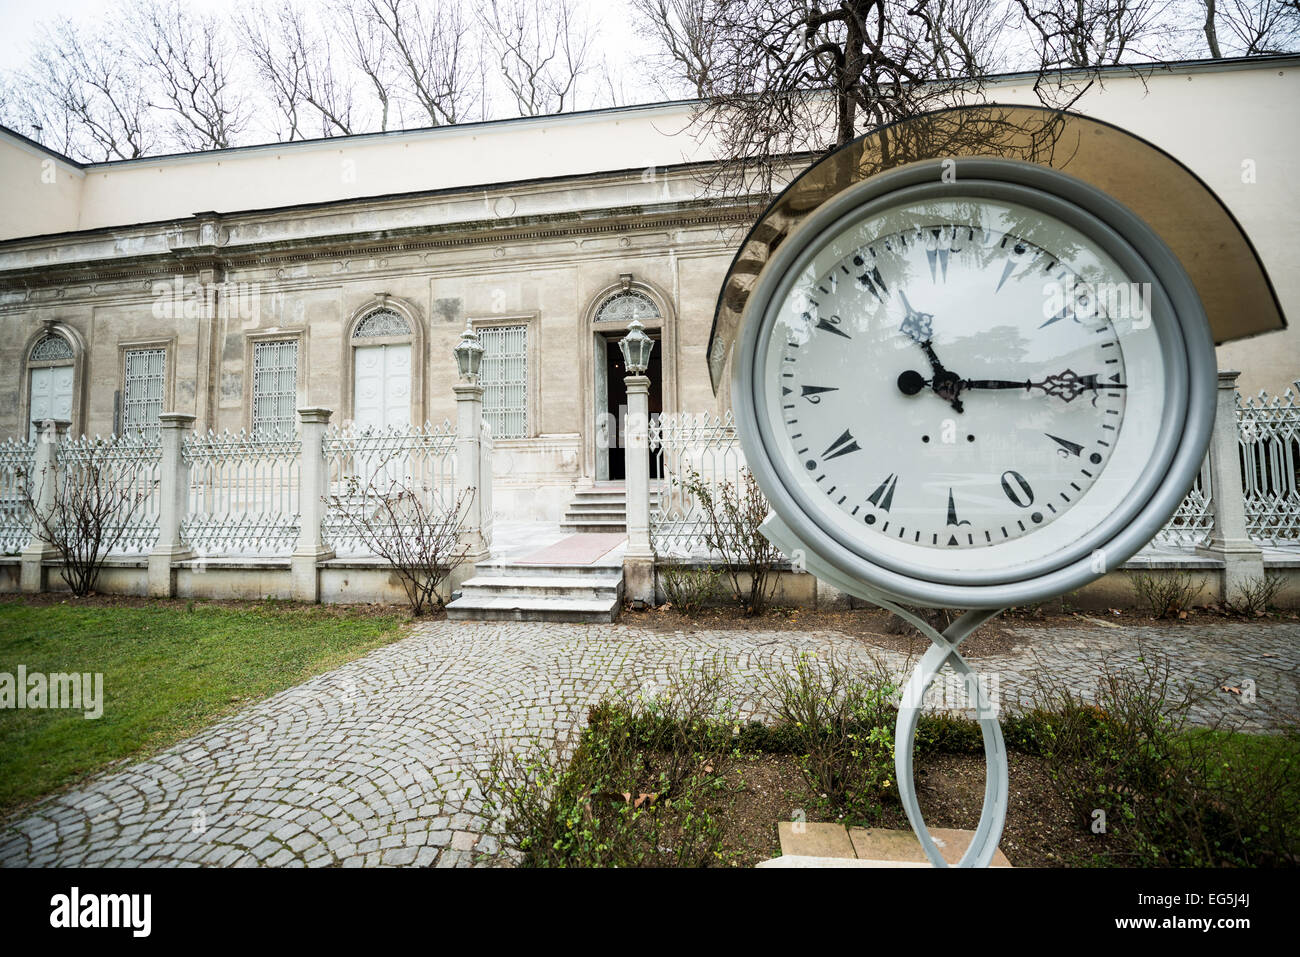 The entrance to the Clock Museum at Dolmabahçe Palace. Dolmabahçe Palace, on the banks of the Bosphorus - Stock Image